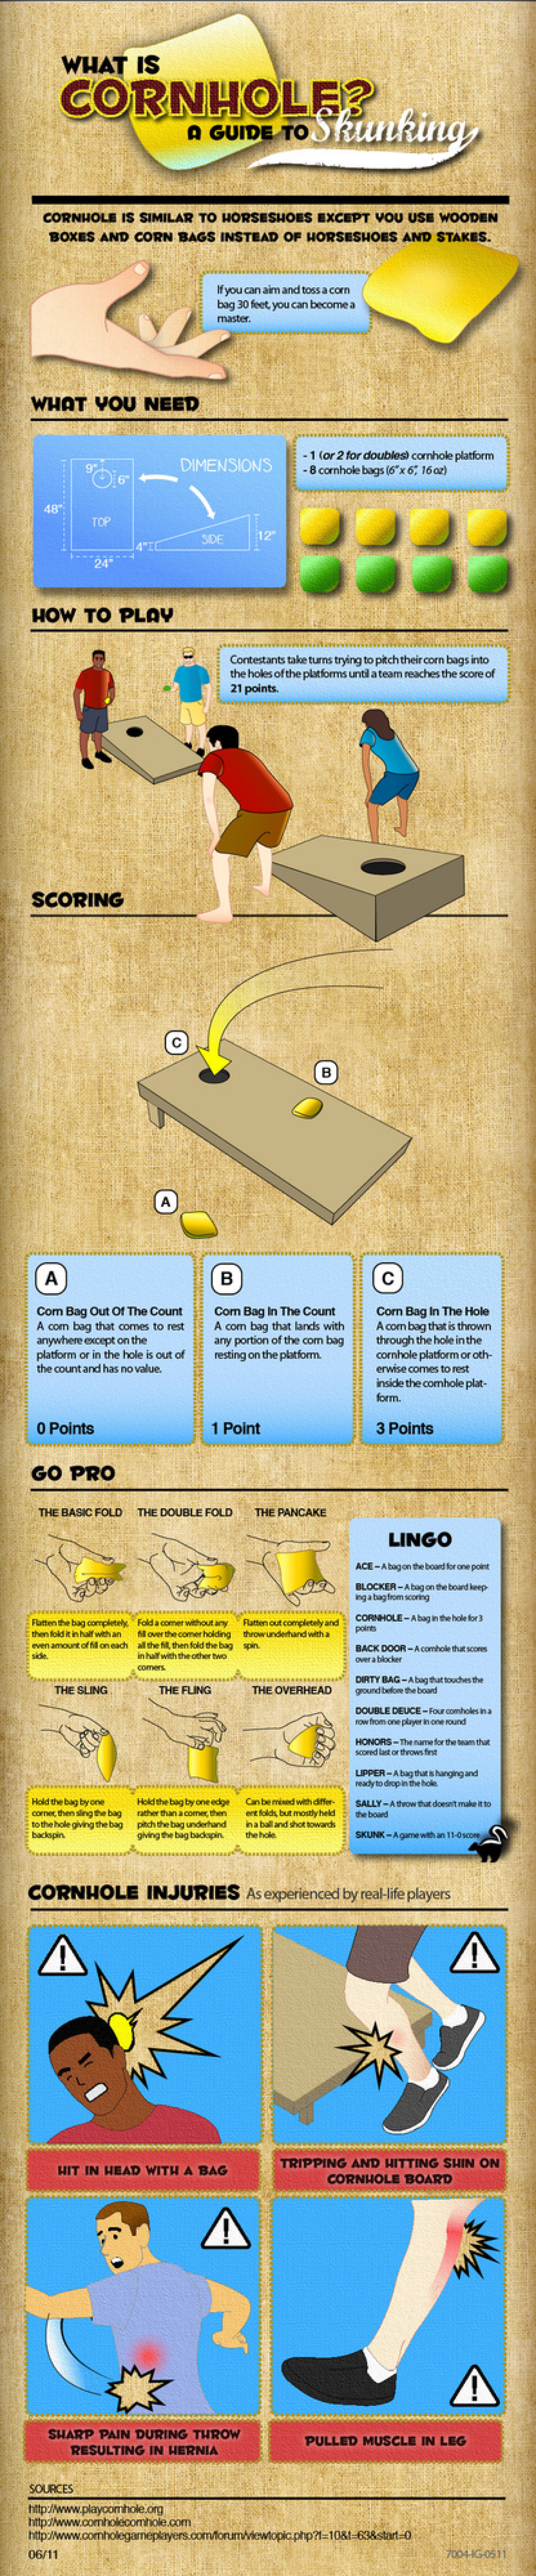 What is Cornhole? Infographic